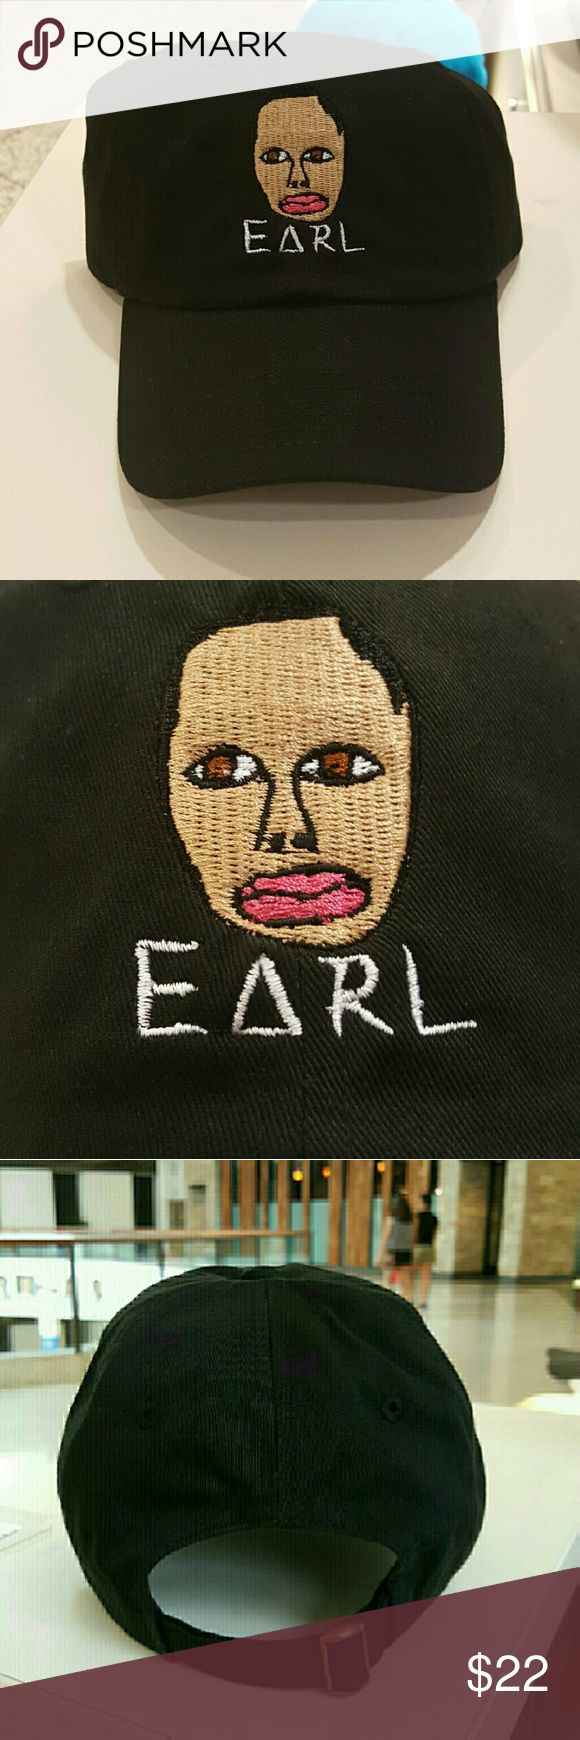 Earl sweatshirt hat $$******READ DESCRIPTION*****$$  No I won't take $10   *Do not comment unless you're ready to buy with money in hand   *New adjustable hat   *If posted still available   *I ship next day if purchased before 5 PM on Sunday and 7.30 PM every other day, if purchased after hours it will be shipped the day after tomorrow   *Shipping takes 5-7days please don't rate based off shipping speeding i don't control USPS   *Trusted seller buy with confidence. Accessories Hats